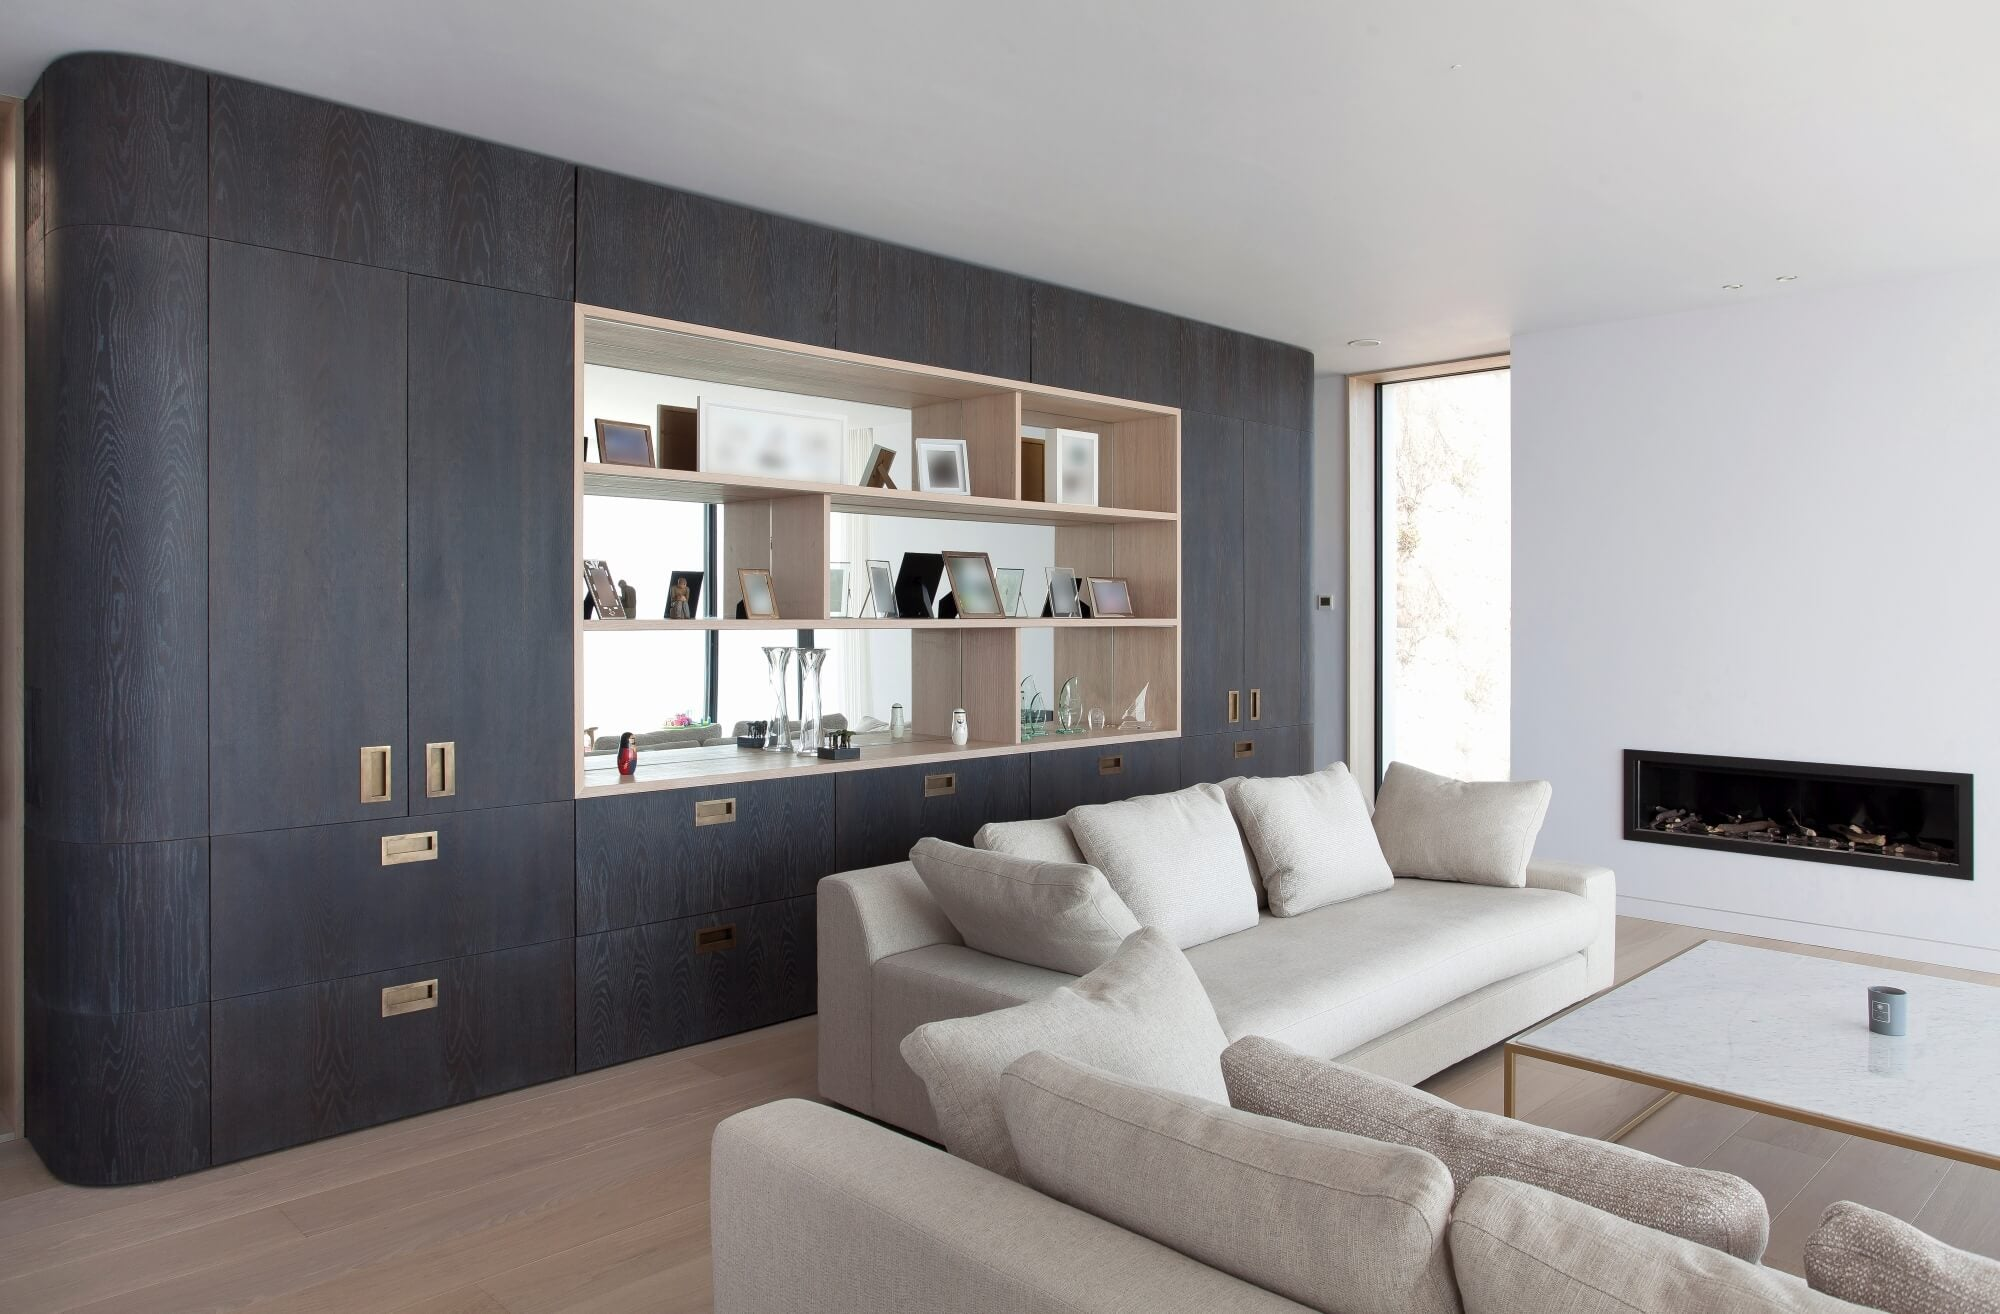 Built in wall cabinets stained dark using eco-friendly wood finish.